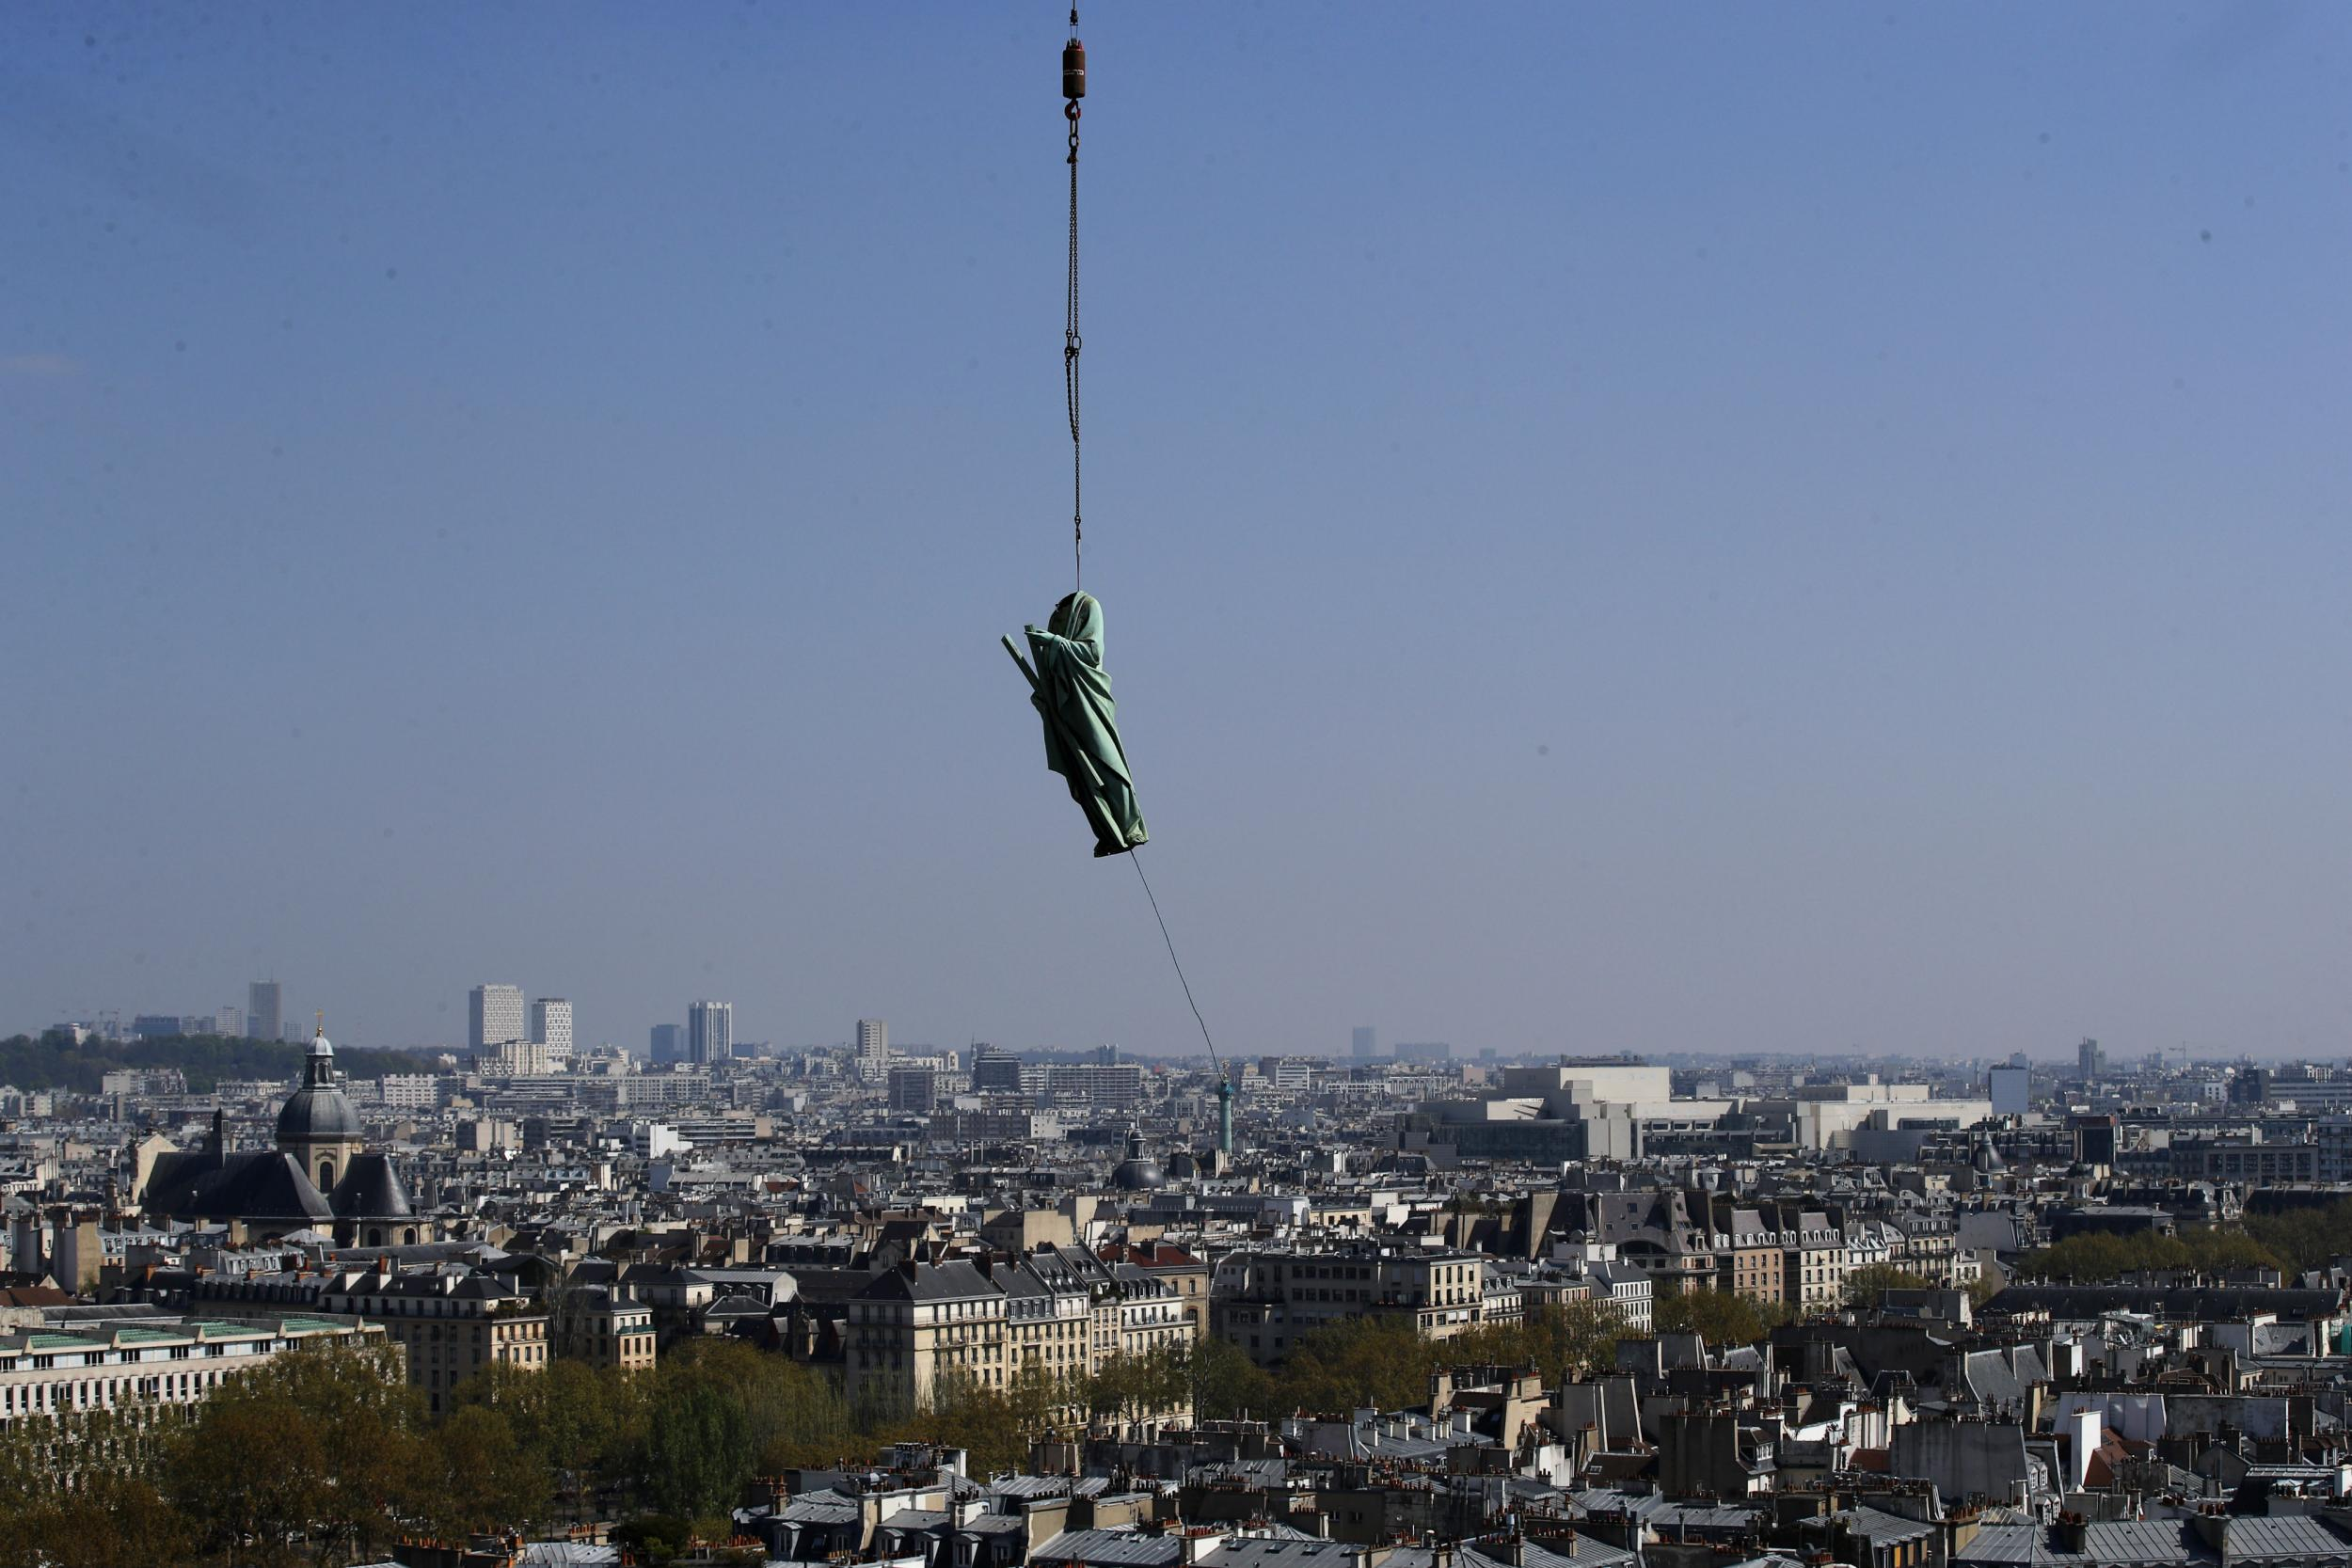 The saint sculptures being removed from Notre-Dame on April 11. Image via The Independent